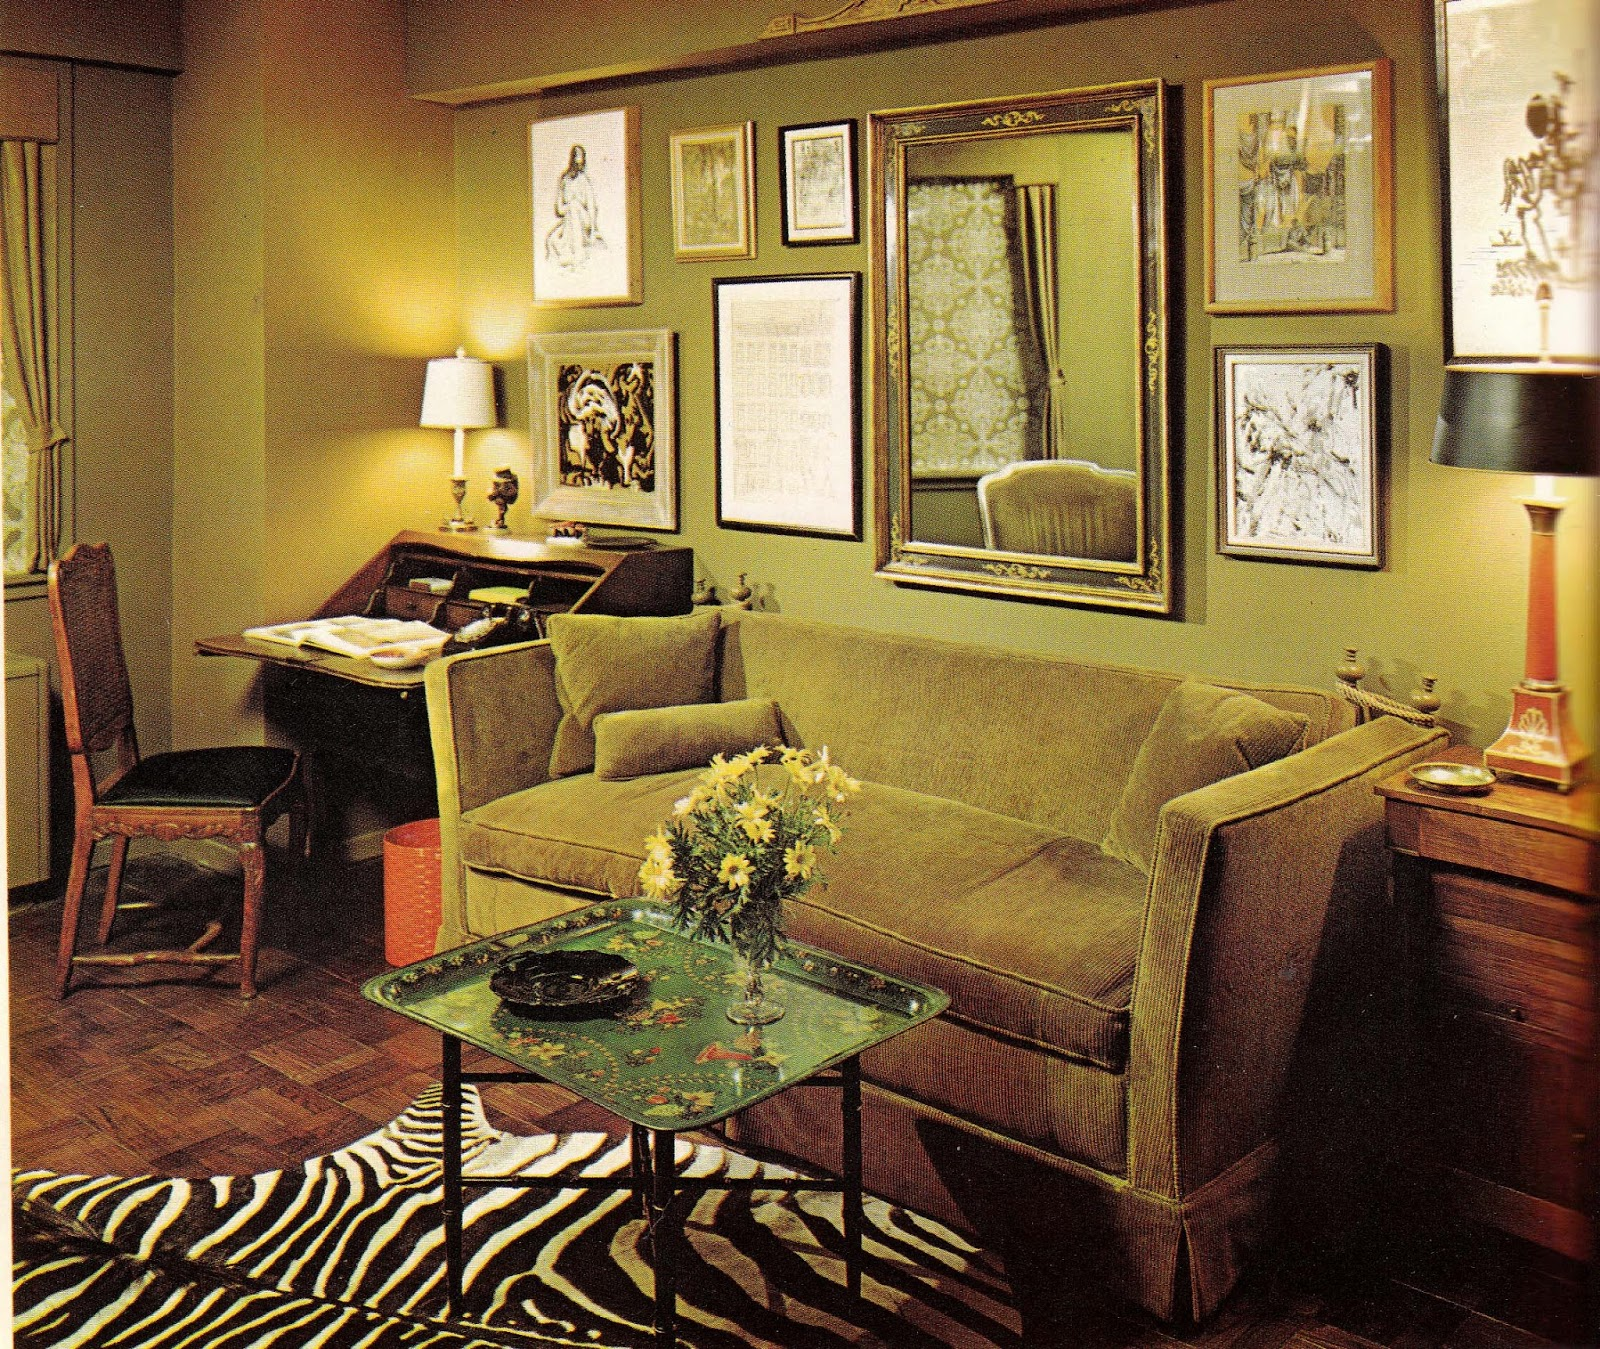 1960s interior d cor the decade of psychedelia gave rise for 1960s furniture designers